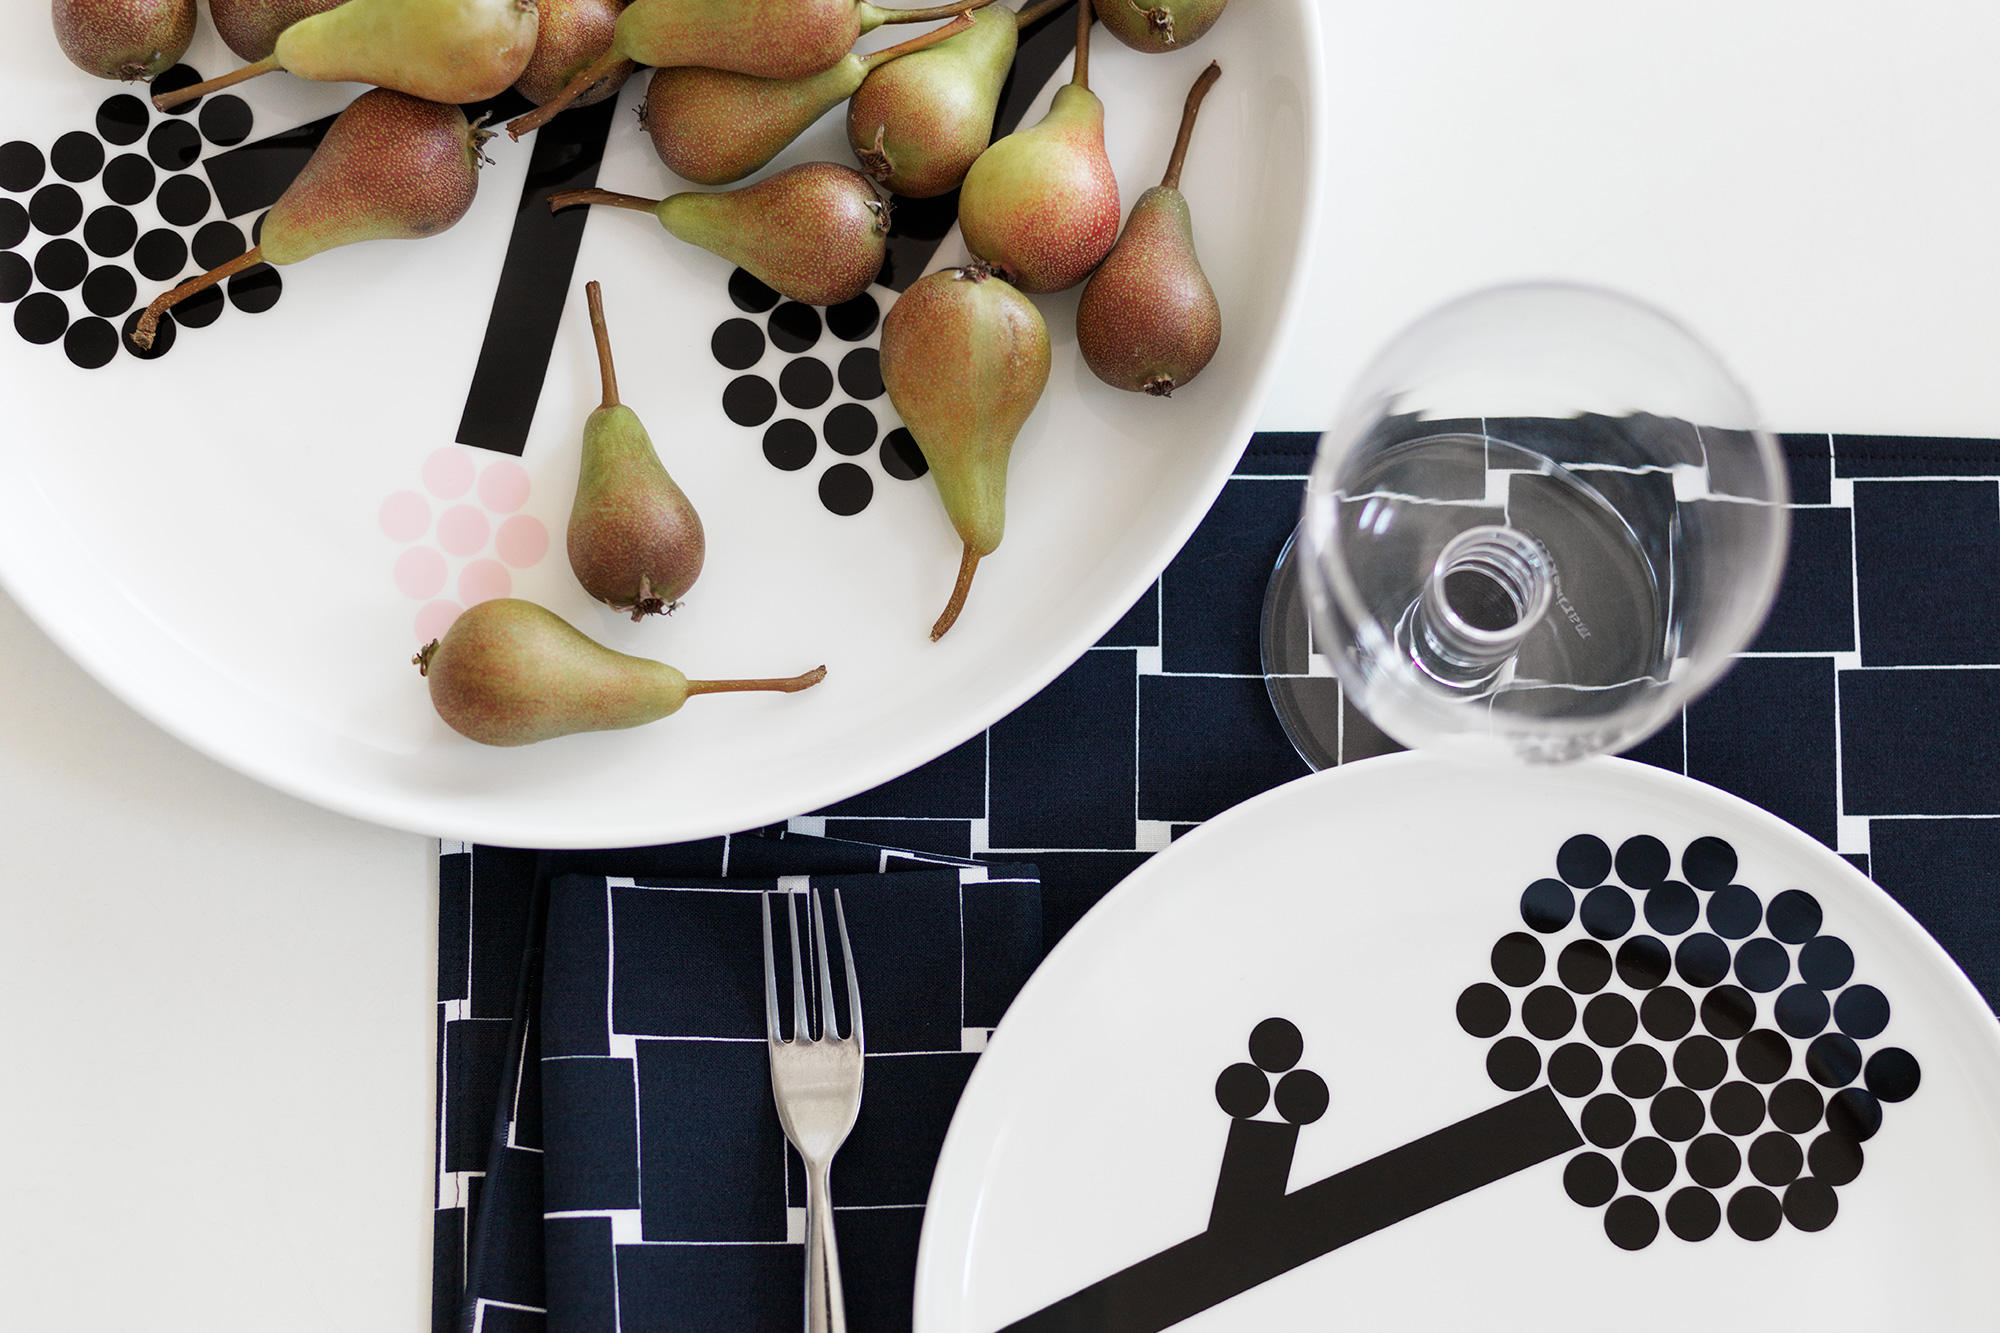 3.3- New home collection by Carina Seth Andersson & Sami Ruotsalainen